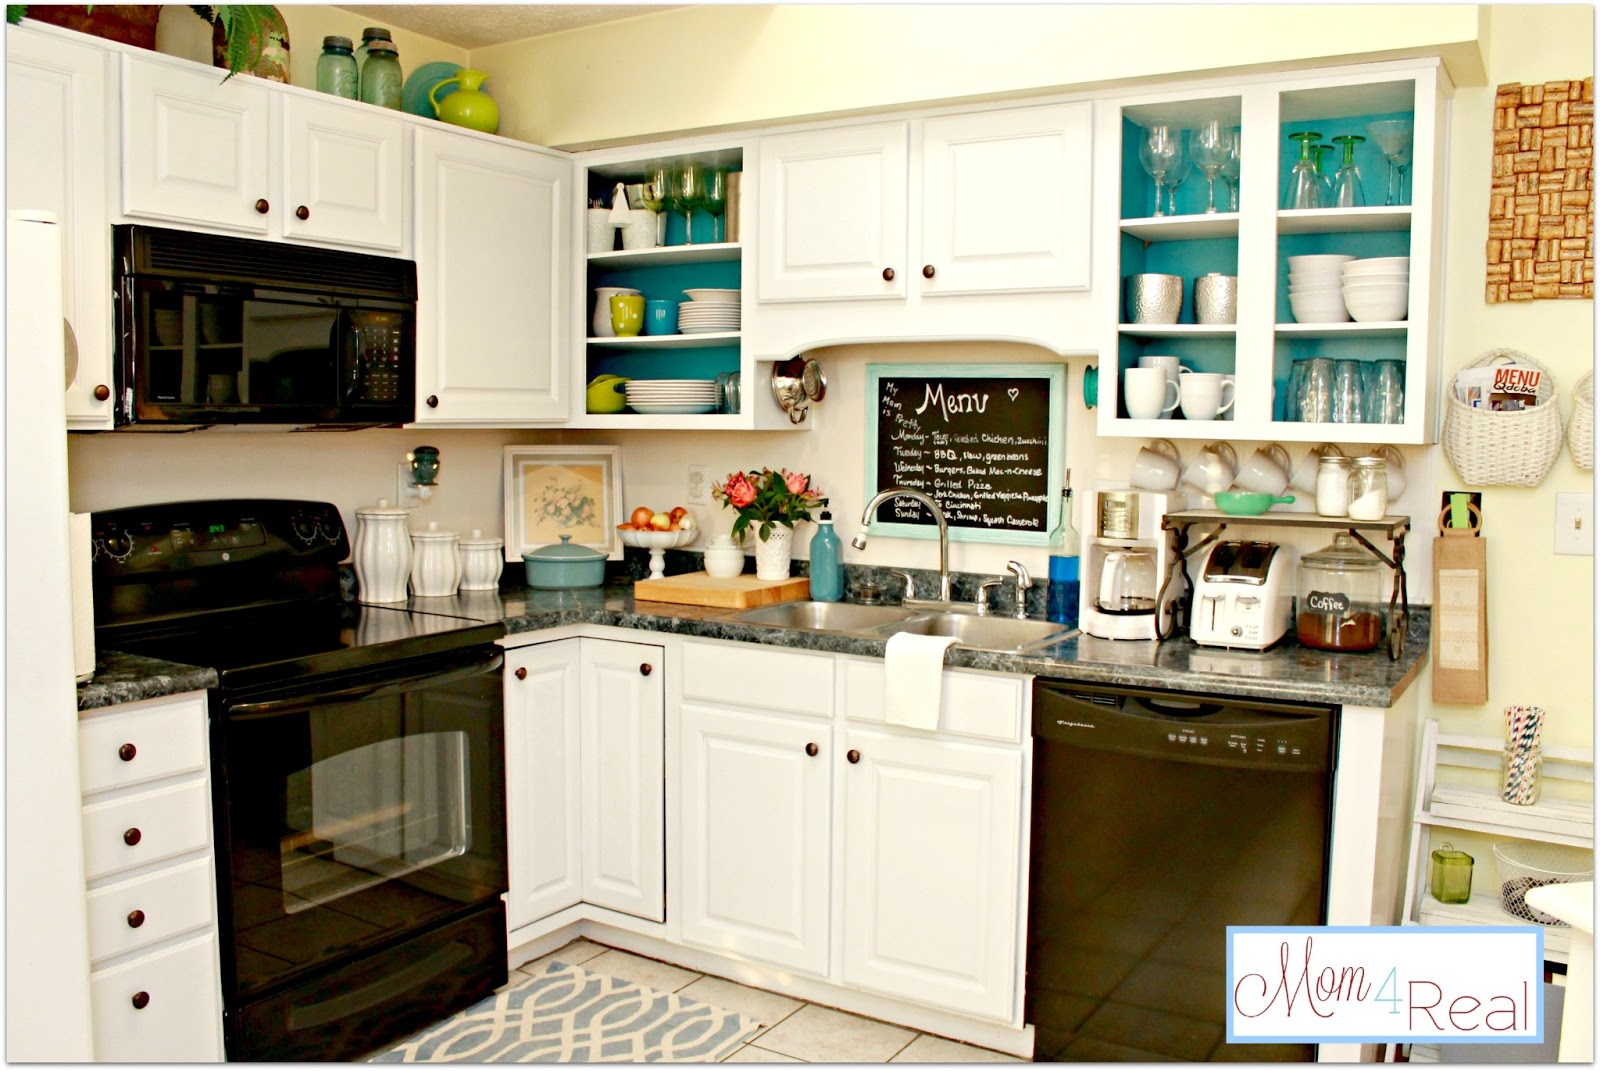 Good Open Cabinets With White, Aqua, Lime Green, U0026 Silver Accents